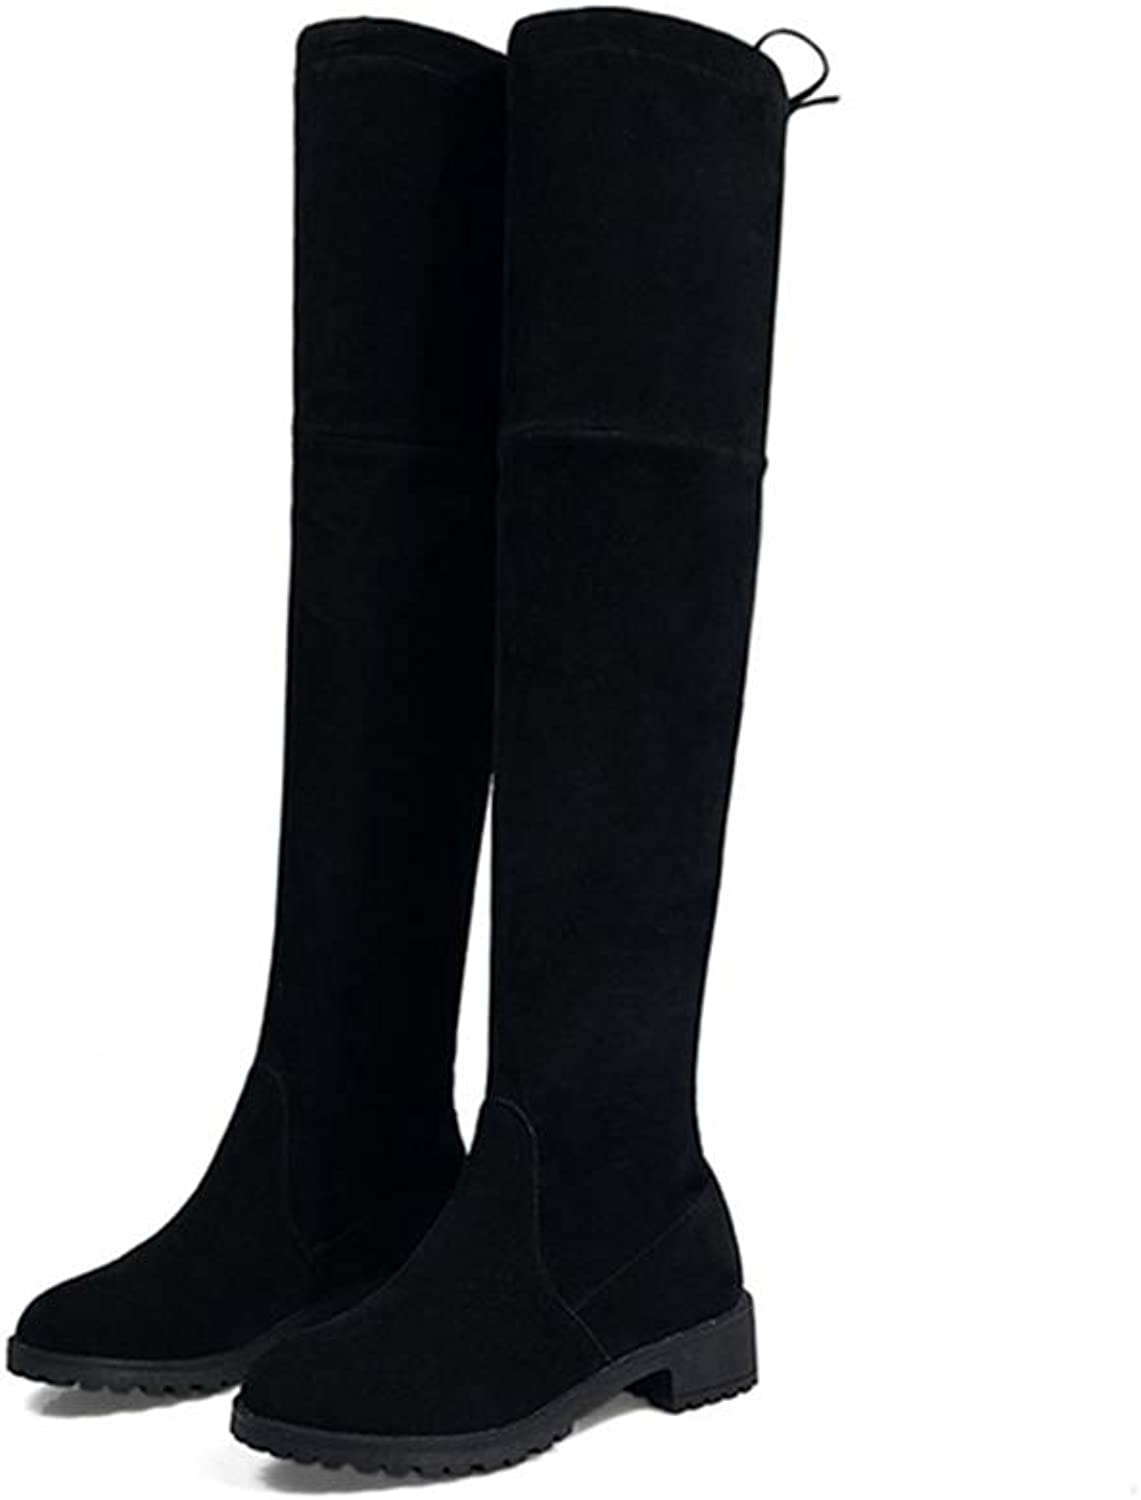 T-JULY High Boots Female Winter Boots Women Over The Knee Boots Flat Stretch Sexy Fashion shoes